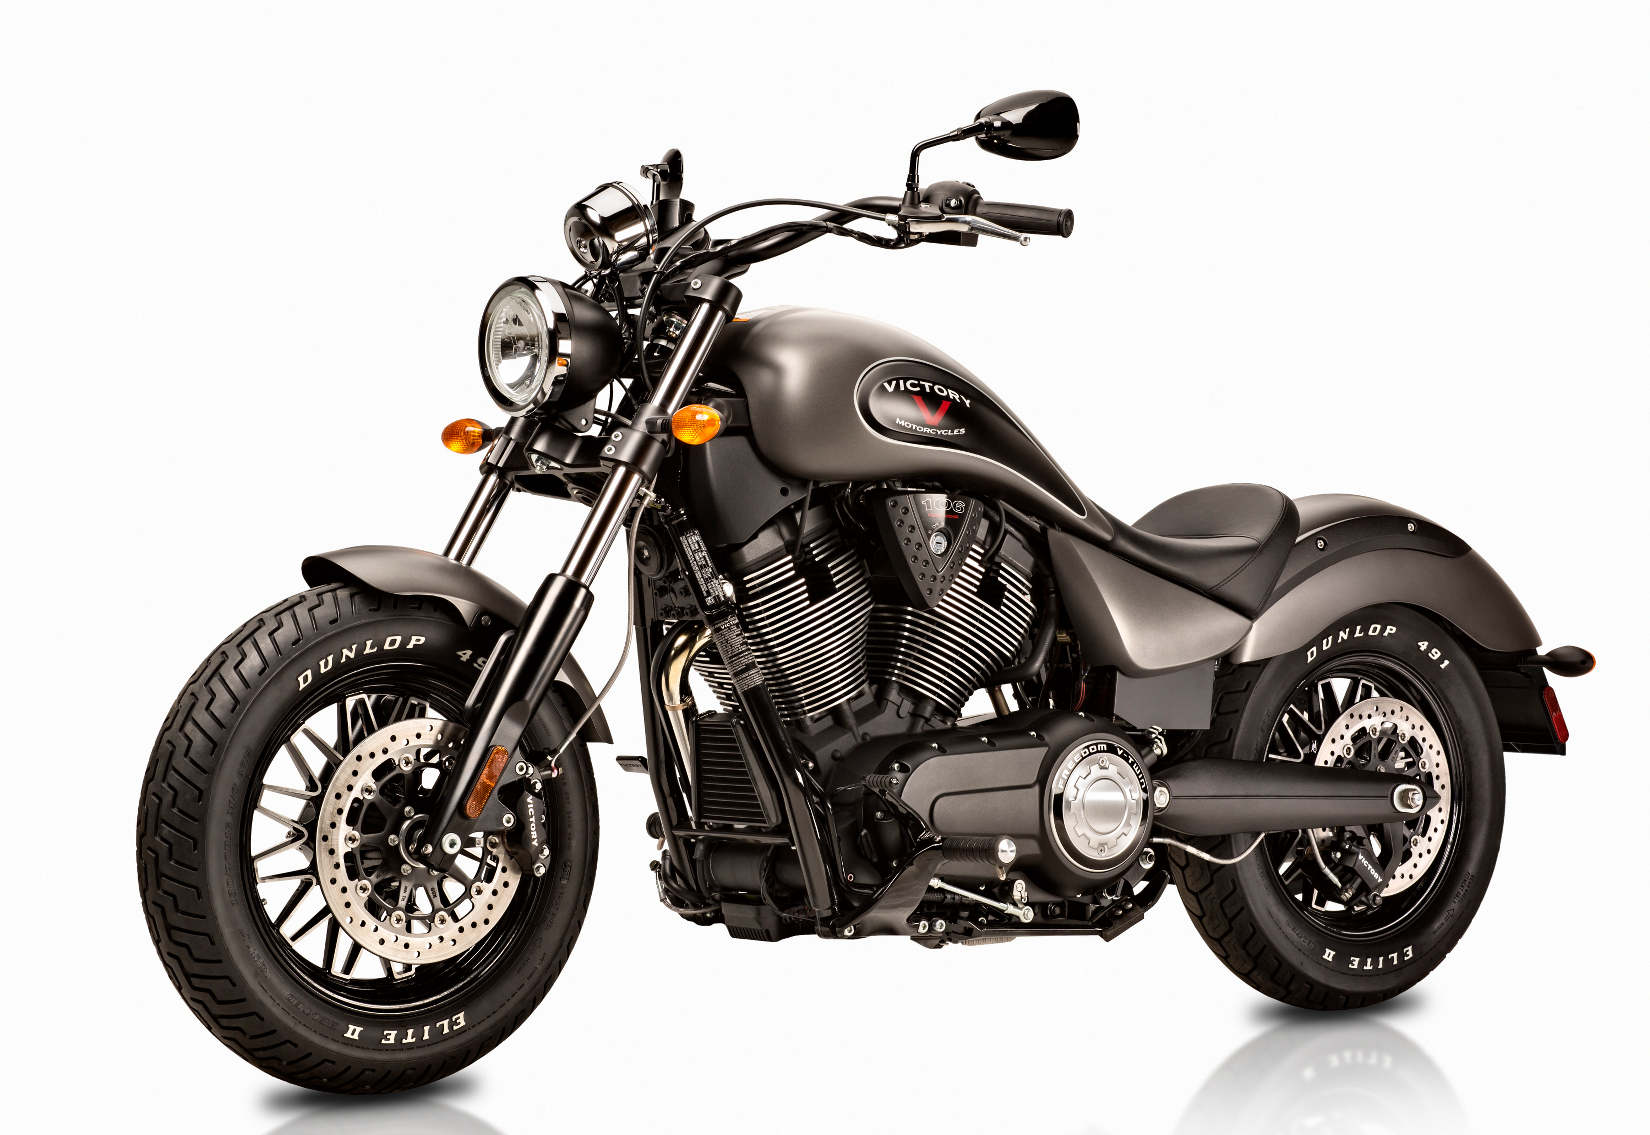 Victory unveils 2015 gunner a bobber with big power motorcycle news Freedom motors reviews